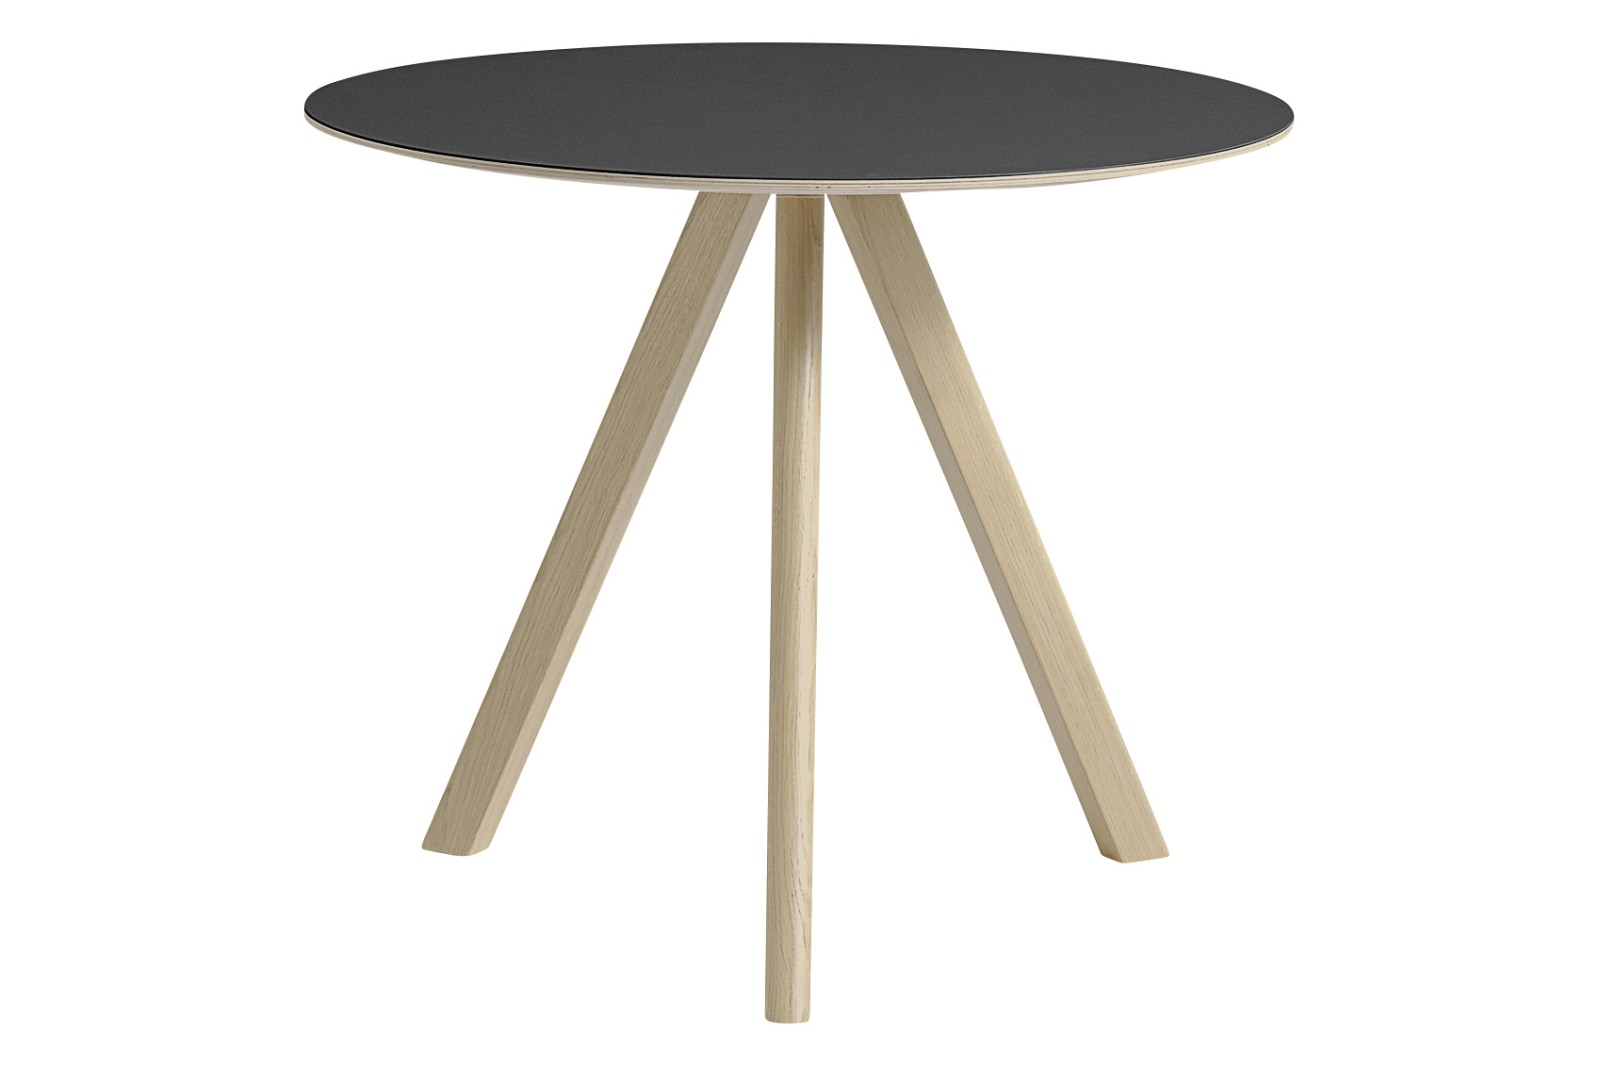 Copenhague Linoleum Top Round Dining Table CPH20 Matt Lacquered Oak Base, Black Top, Small